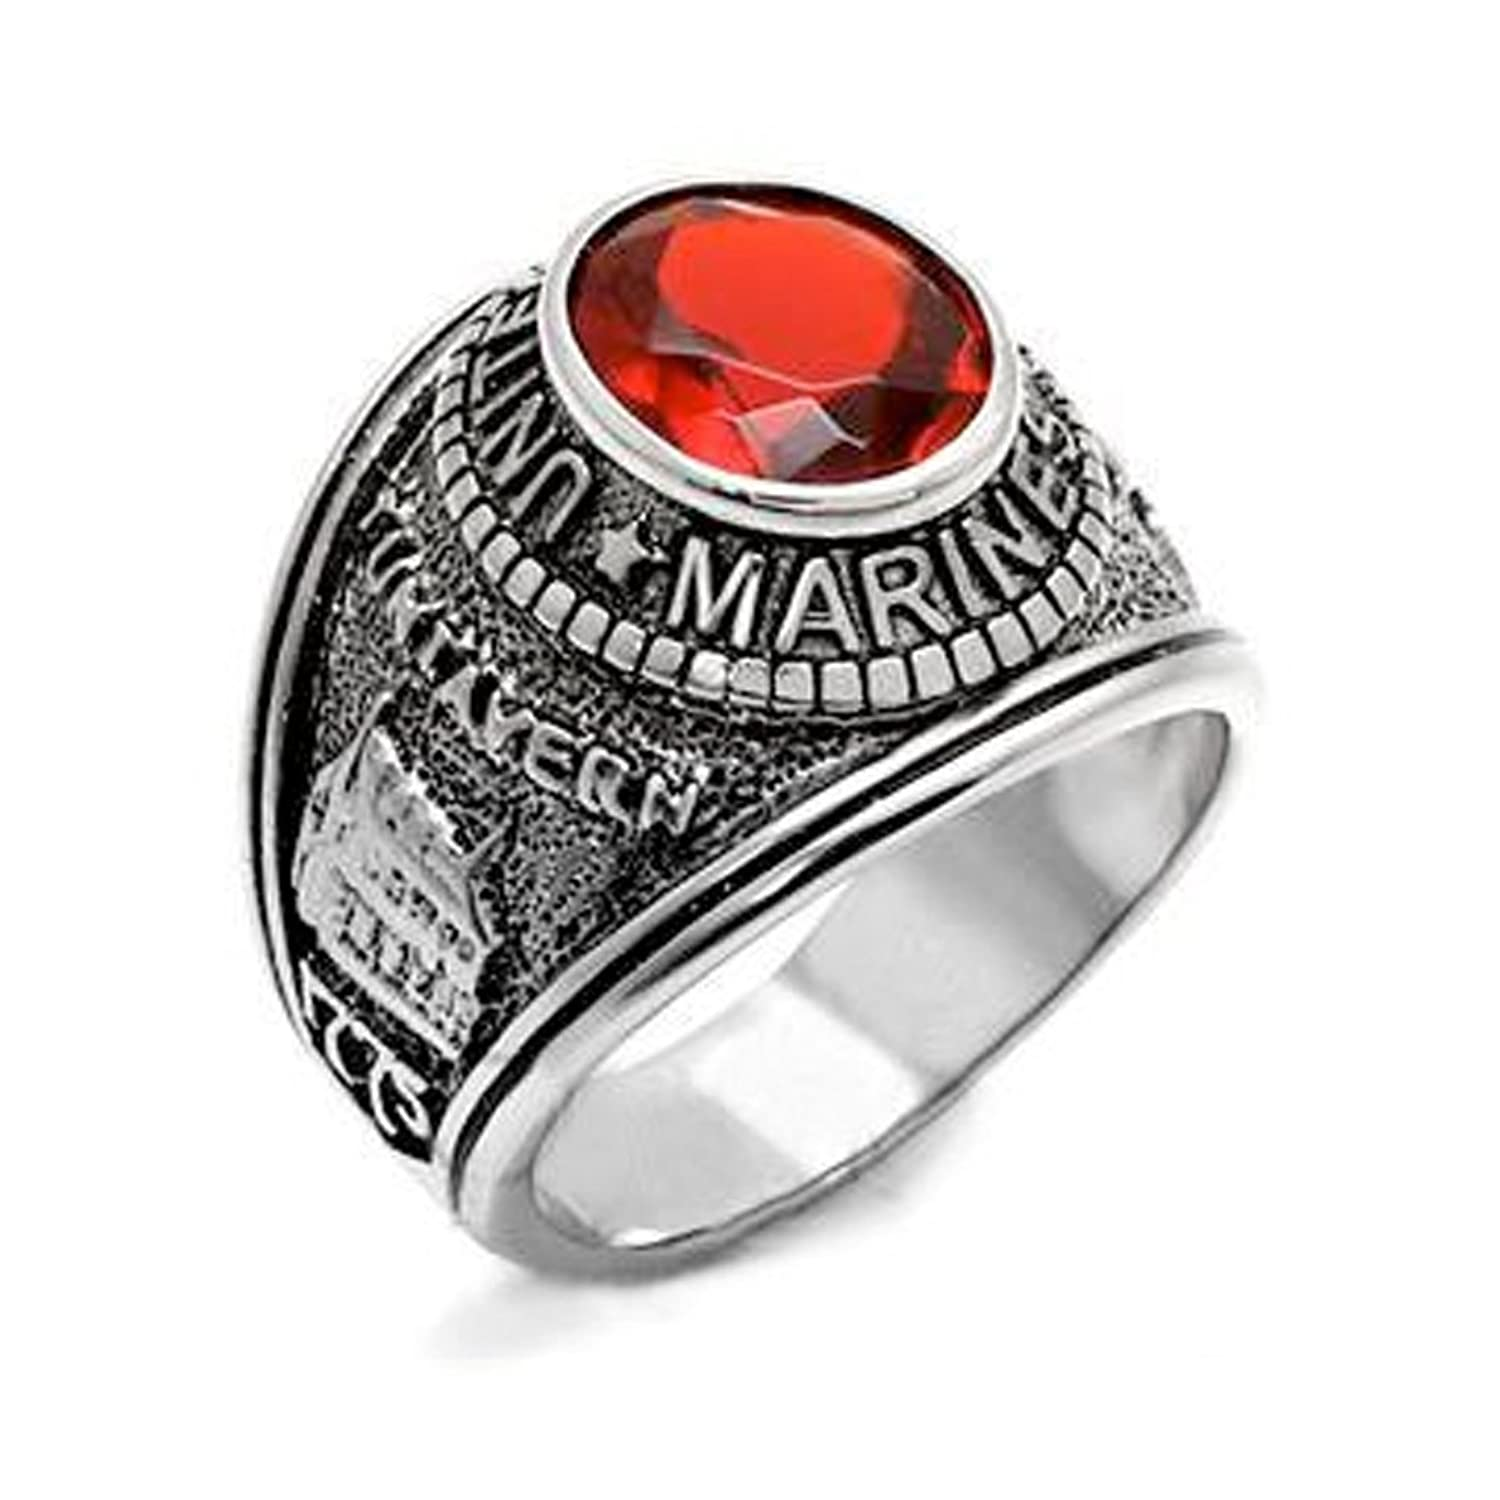 wedding us marines air war item guard coast ring navy for in jewelry military from officers army force rings veteran